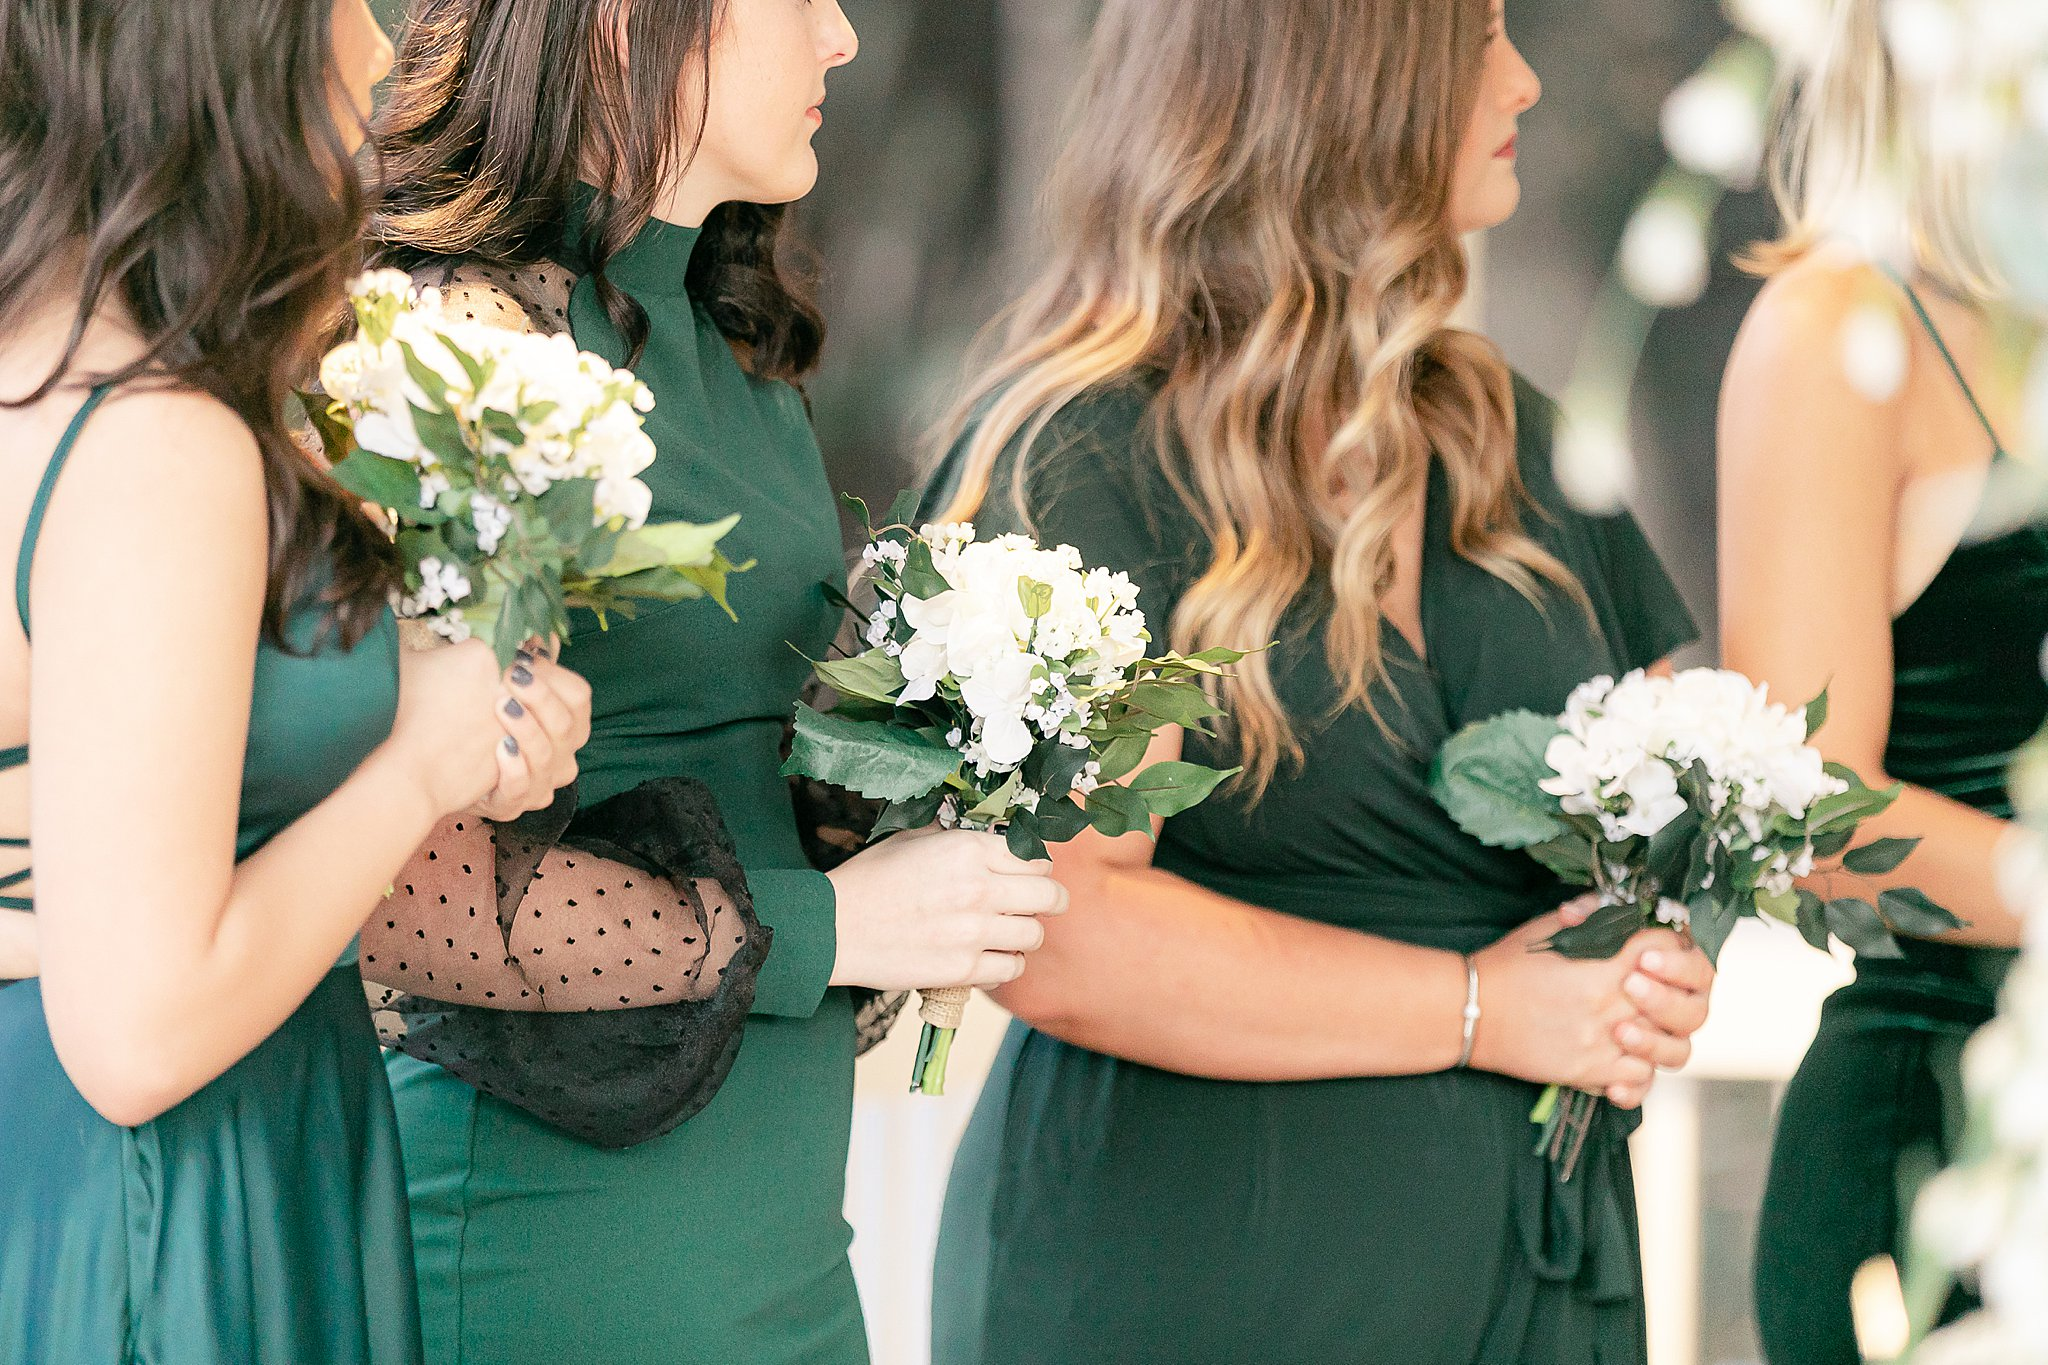 Carly-Barton-Photography-Texas-Wedding-Photographer-Western-Sky-Wedding-Event-Venue-Emerald-Green-Theme_0029.jpg